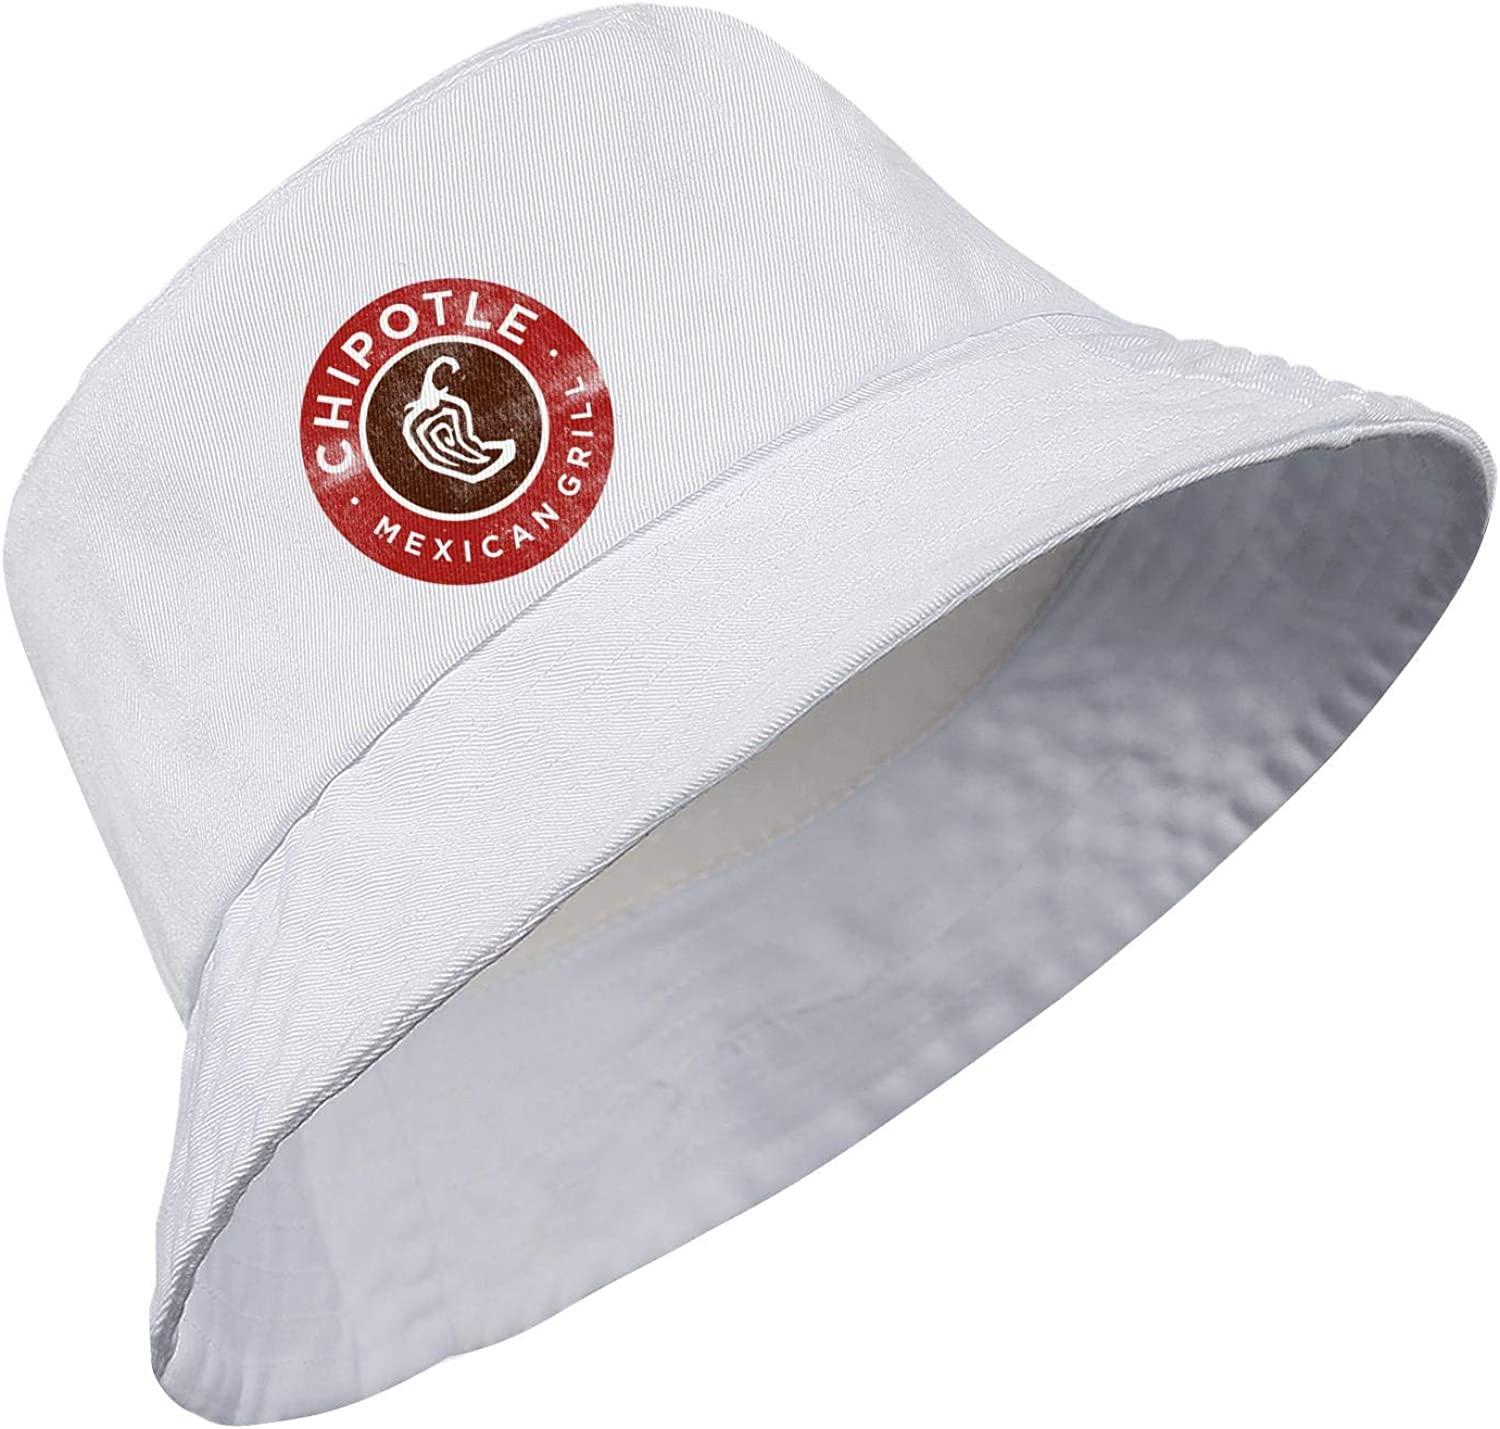 Mens Womens Fashion Basin Hat Mexican-Chipotle-Grill-Burritos-CMG Washed Cotton Sun Cap